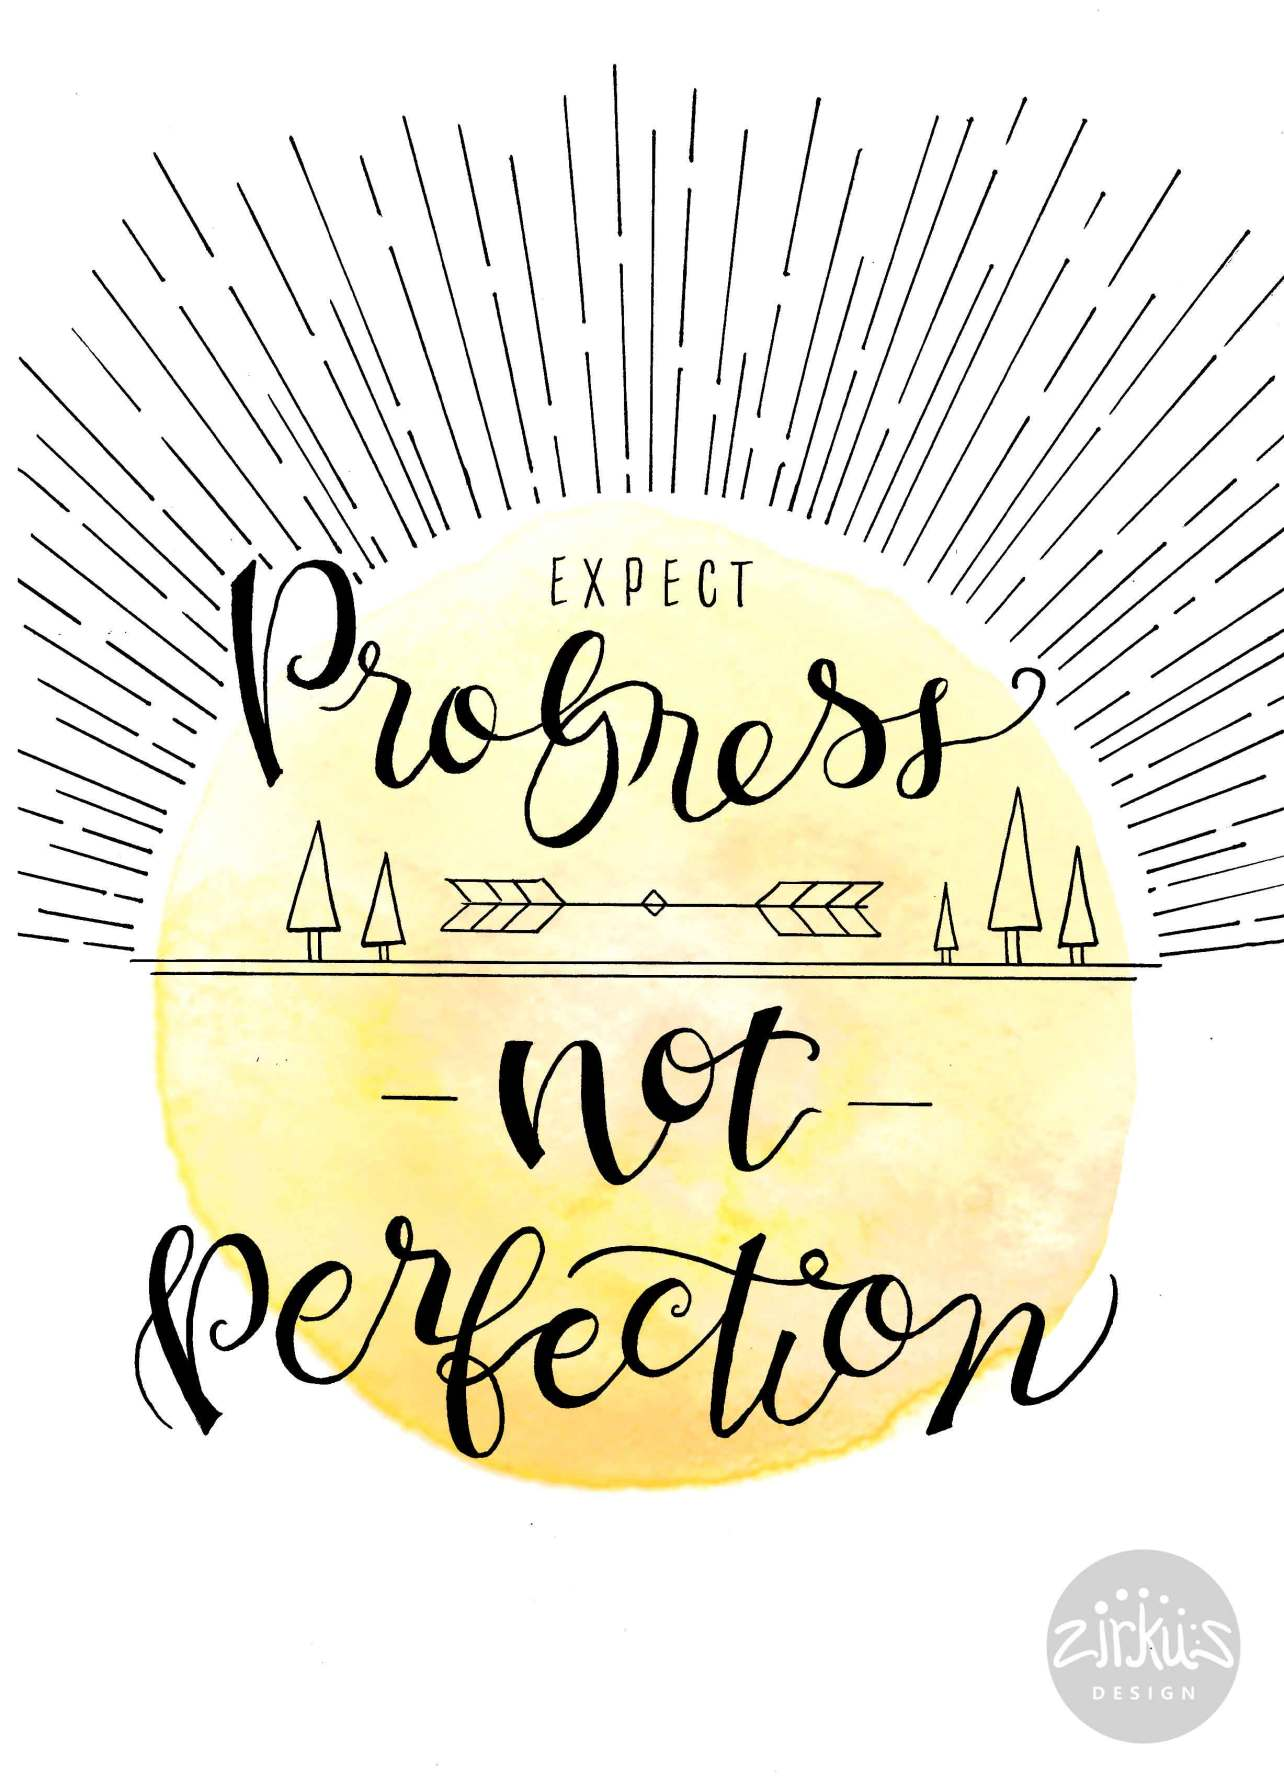 Zirkus Design | Expect Progress Not Perfection | Hand Lettering + Watercolor